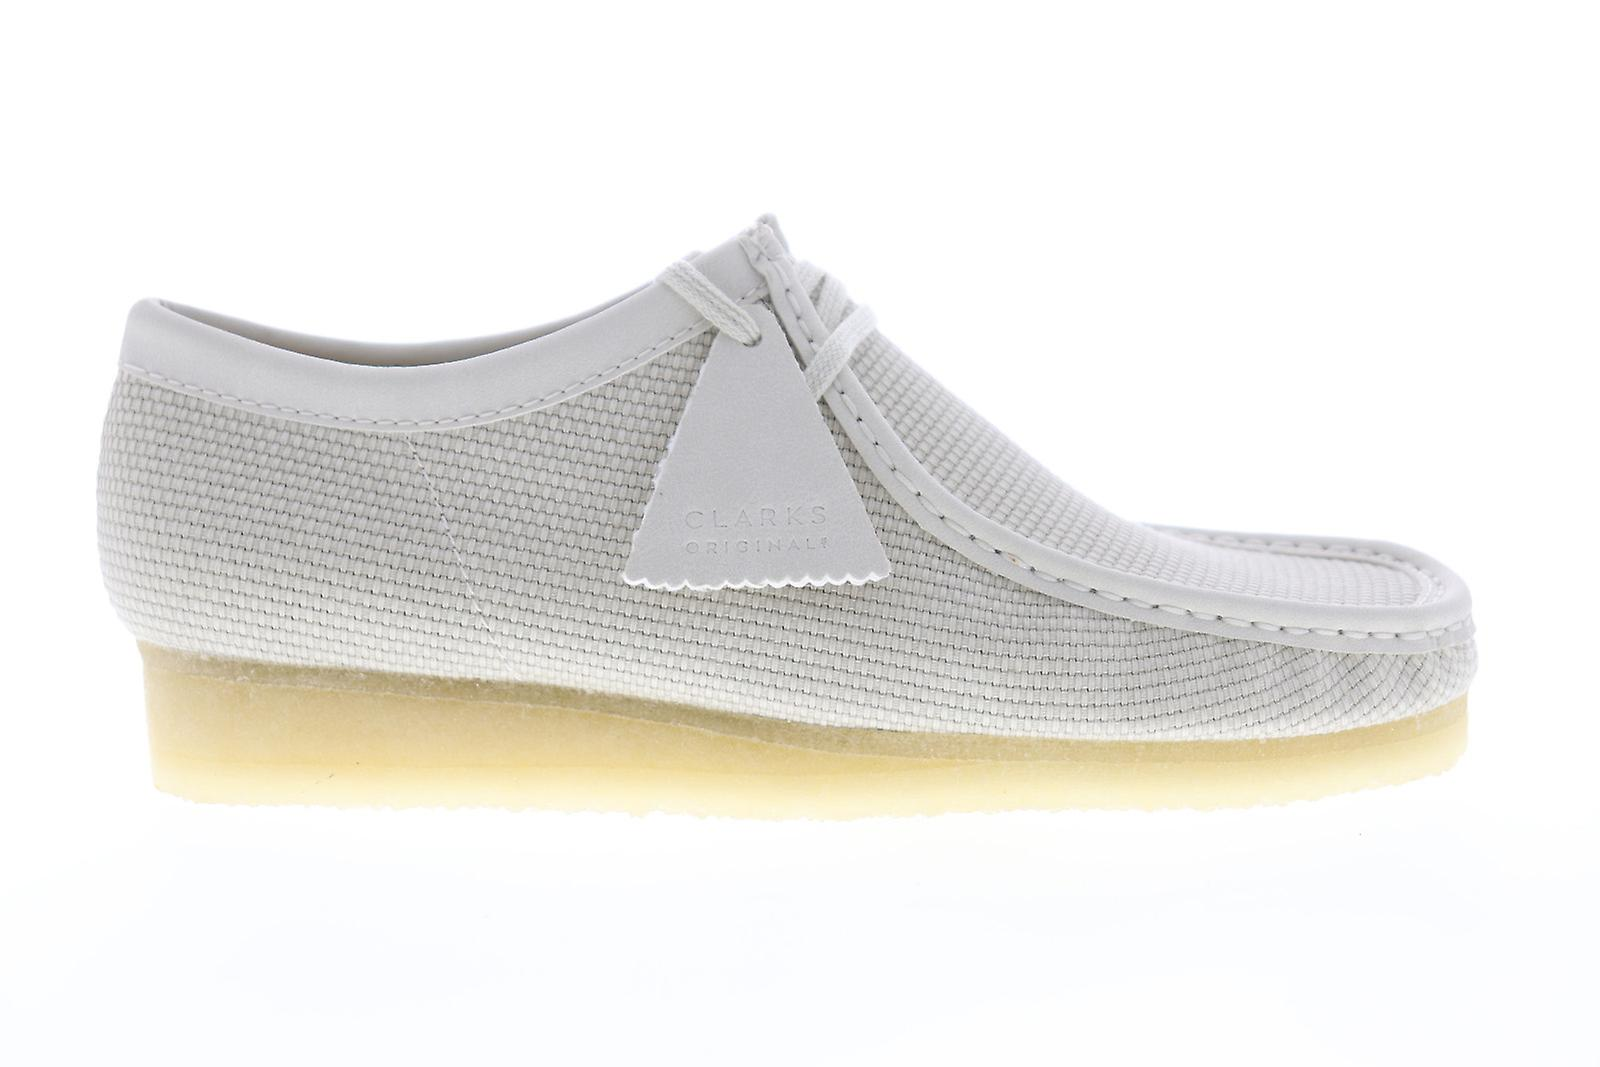 Clarks Wallabee Mens White Canvas Casual Lace Up Oxfords Chaussures